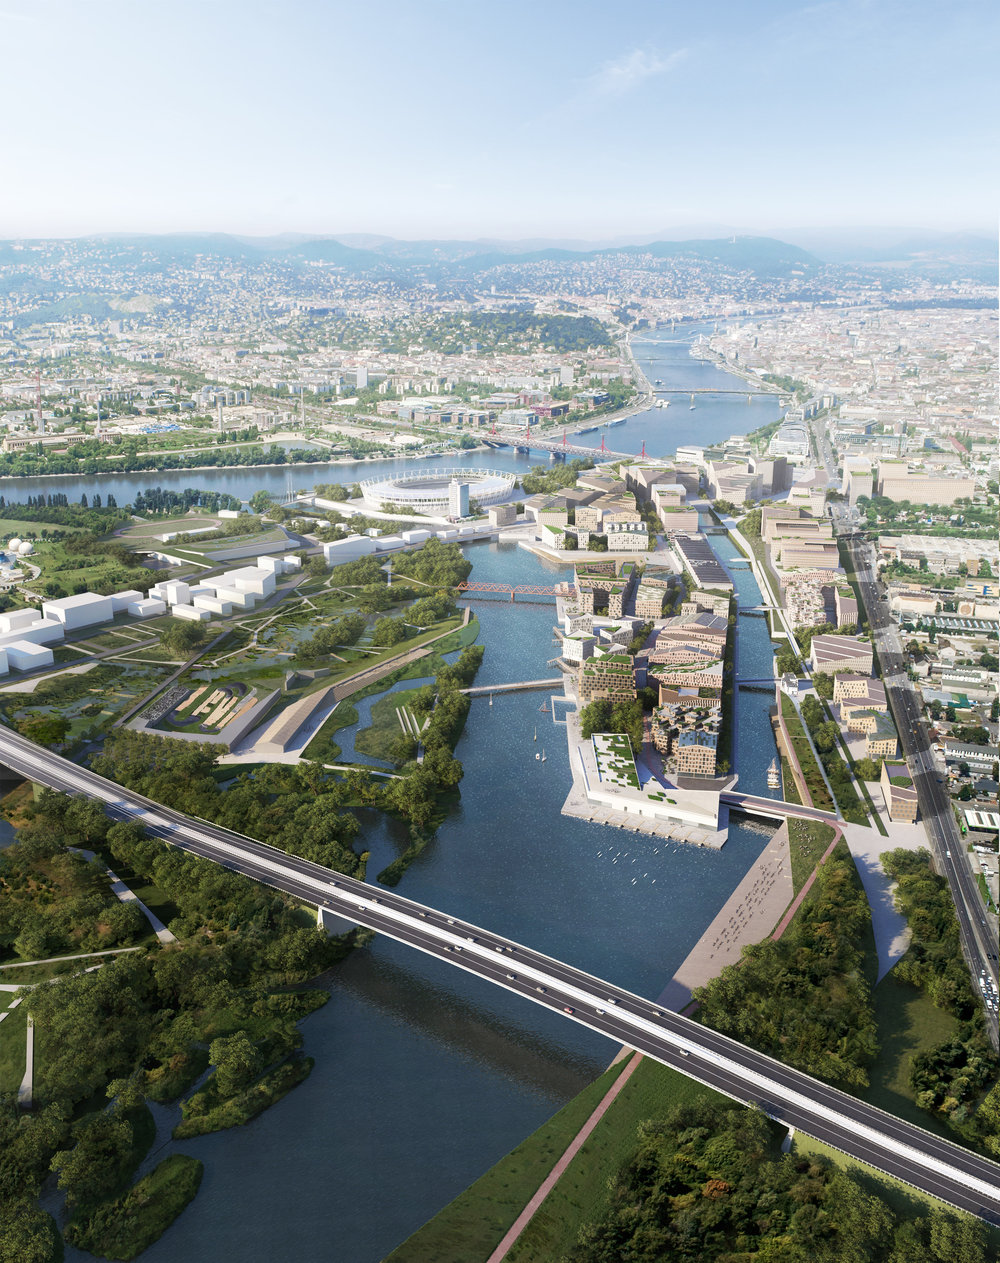 The Budapest 2030 plan is aimed at creating a more sustainable, energy-efficient and socially minded city.